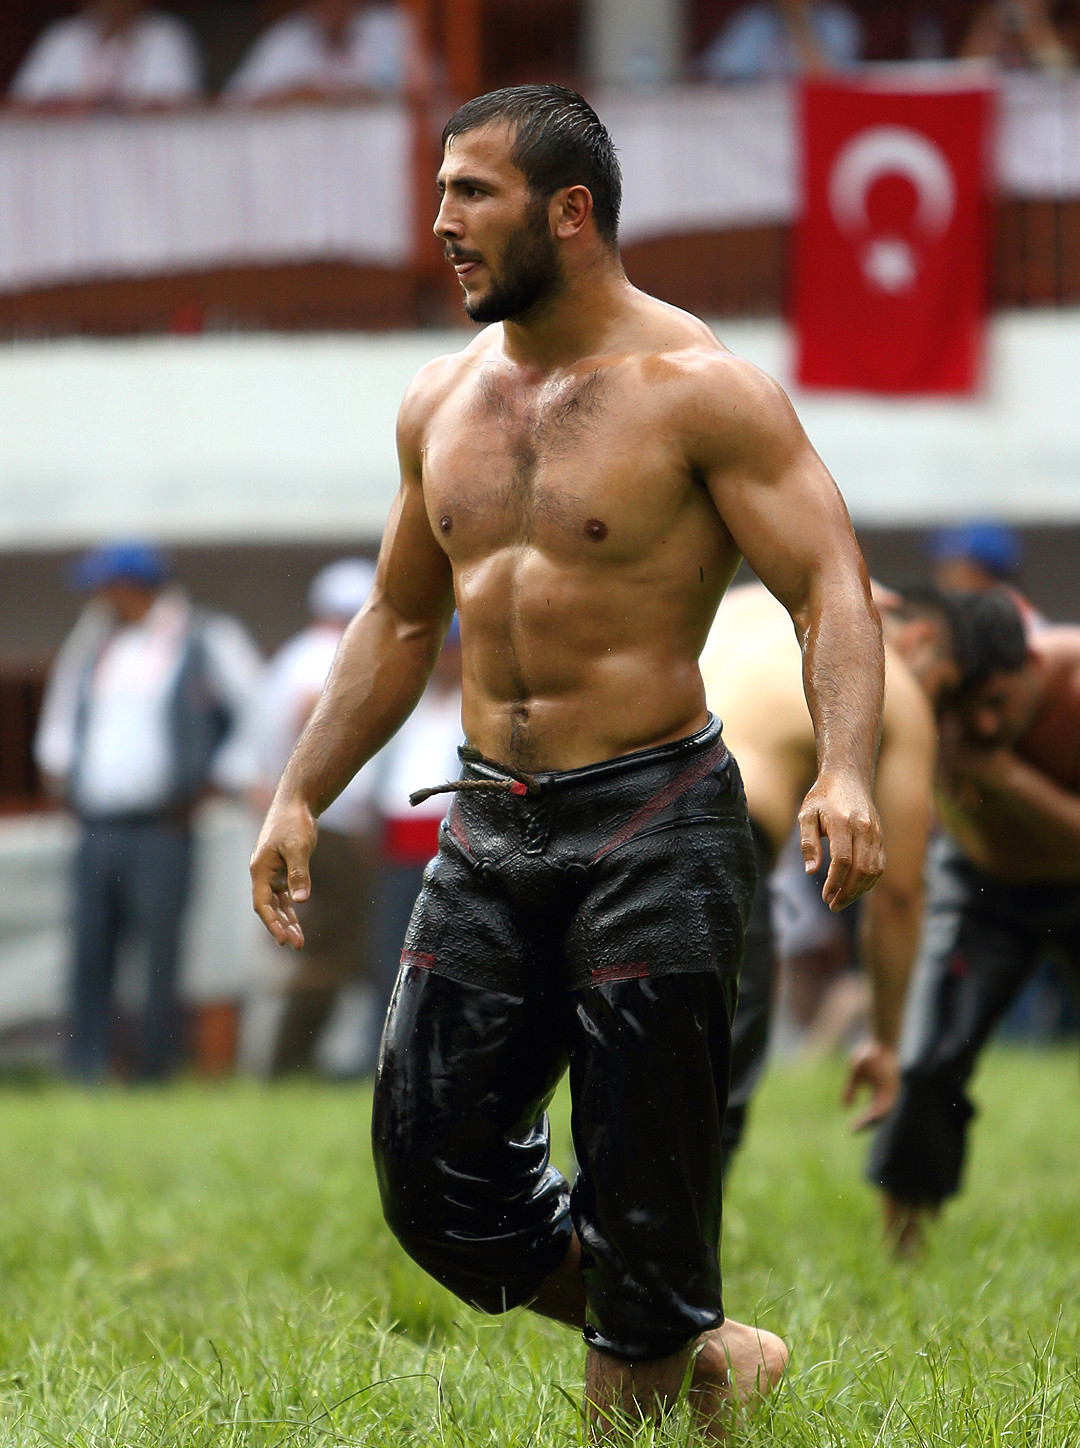 Watch Video & Photos: Oil Wrestling Tournament a 653 Year Old Turkey Traditional Game